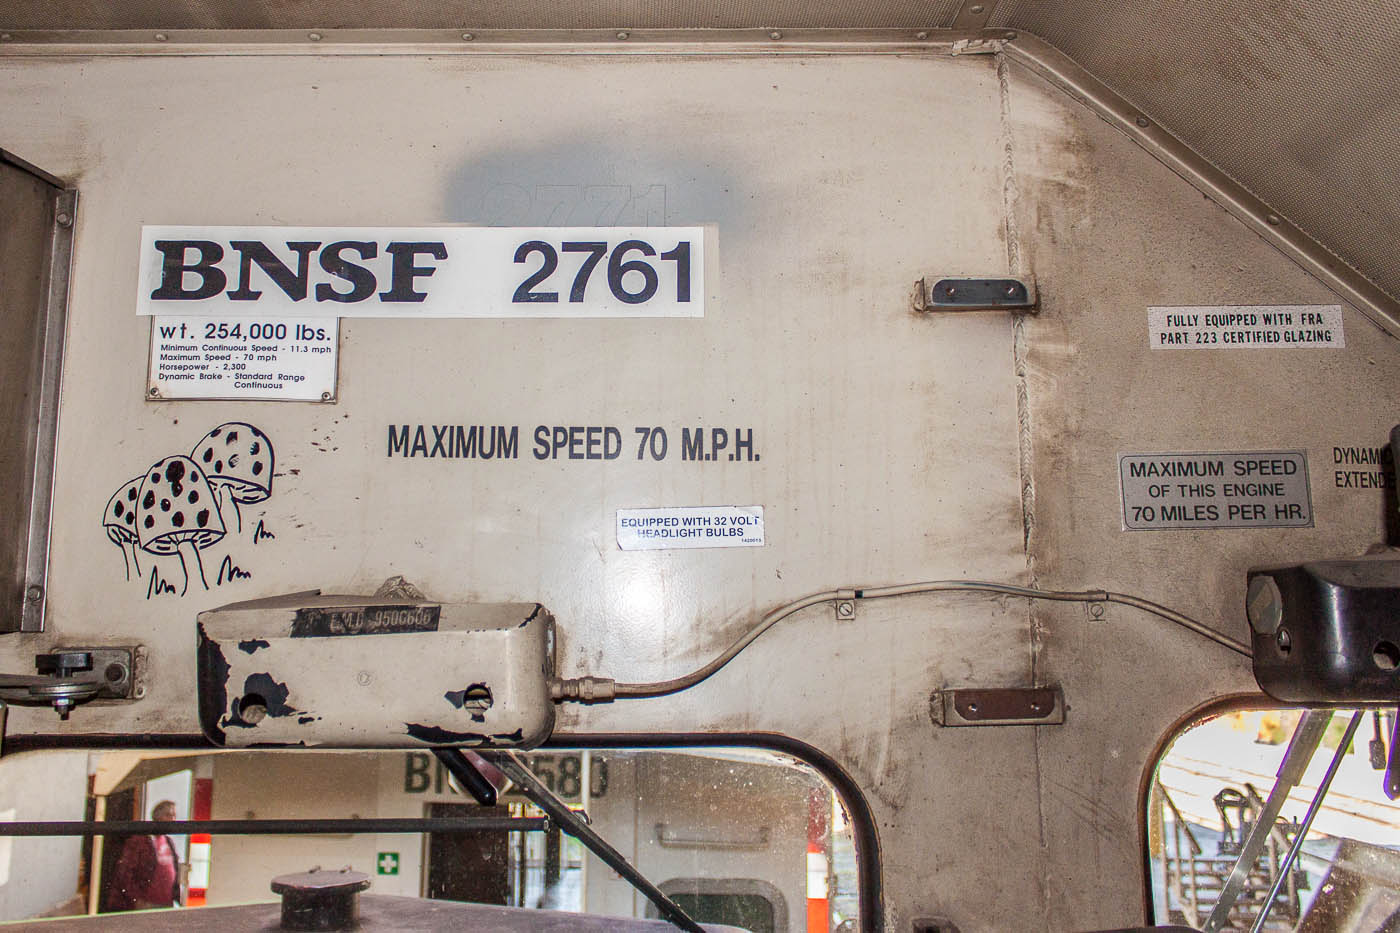 Cab view of BNSF 2761 in Winnipeg, MB 2012/09/15